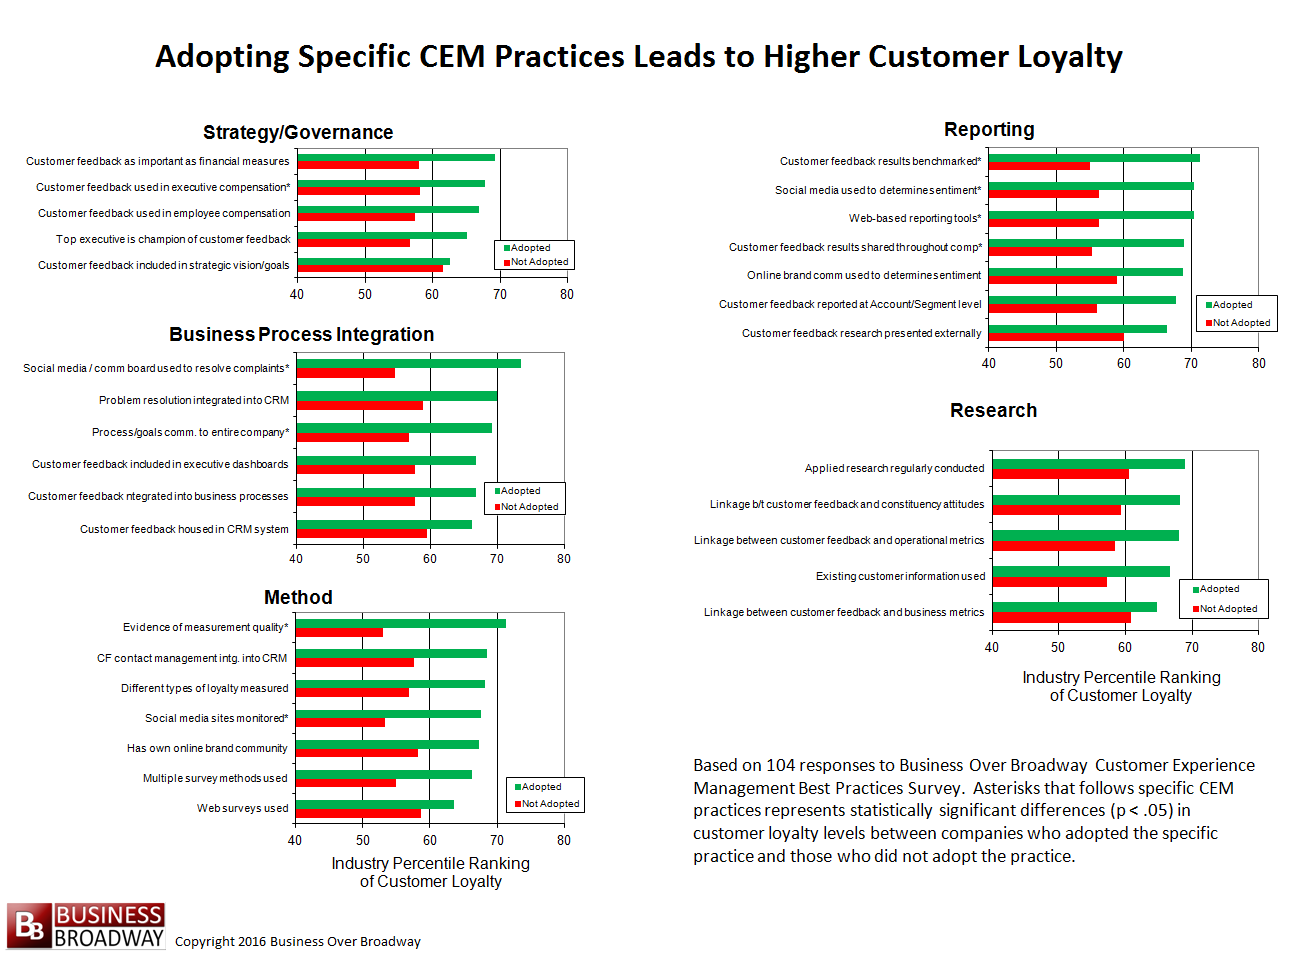 Figure 3. Adoption of Specific CEM Practices Lead to Higher Levels of Customer Loyalty. Click image to enlarge.